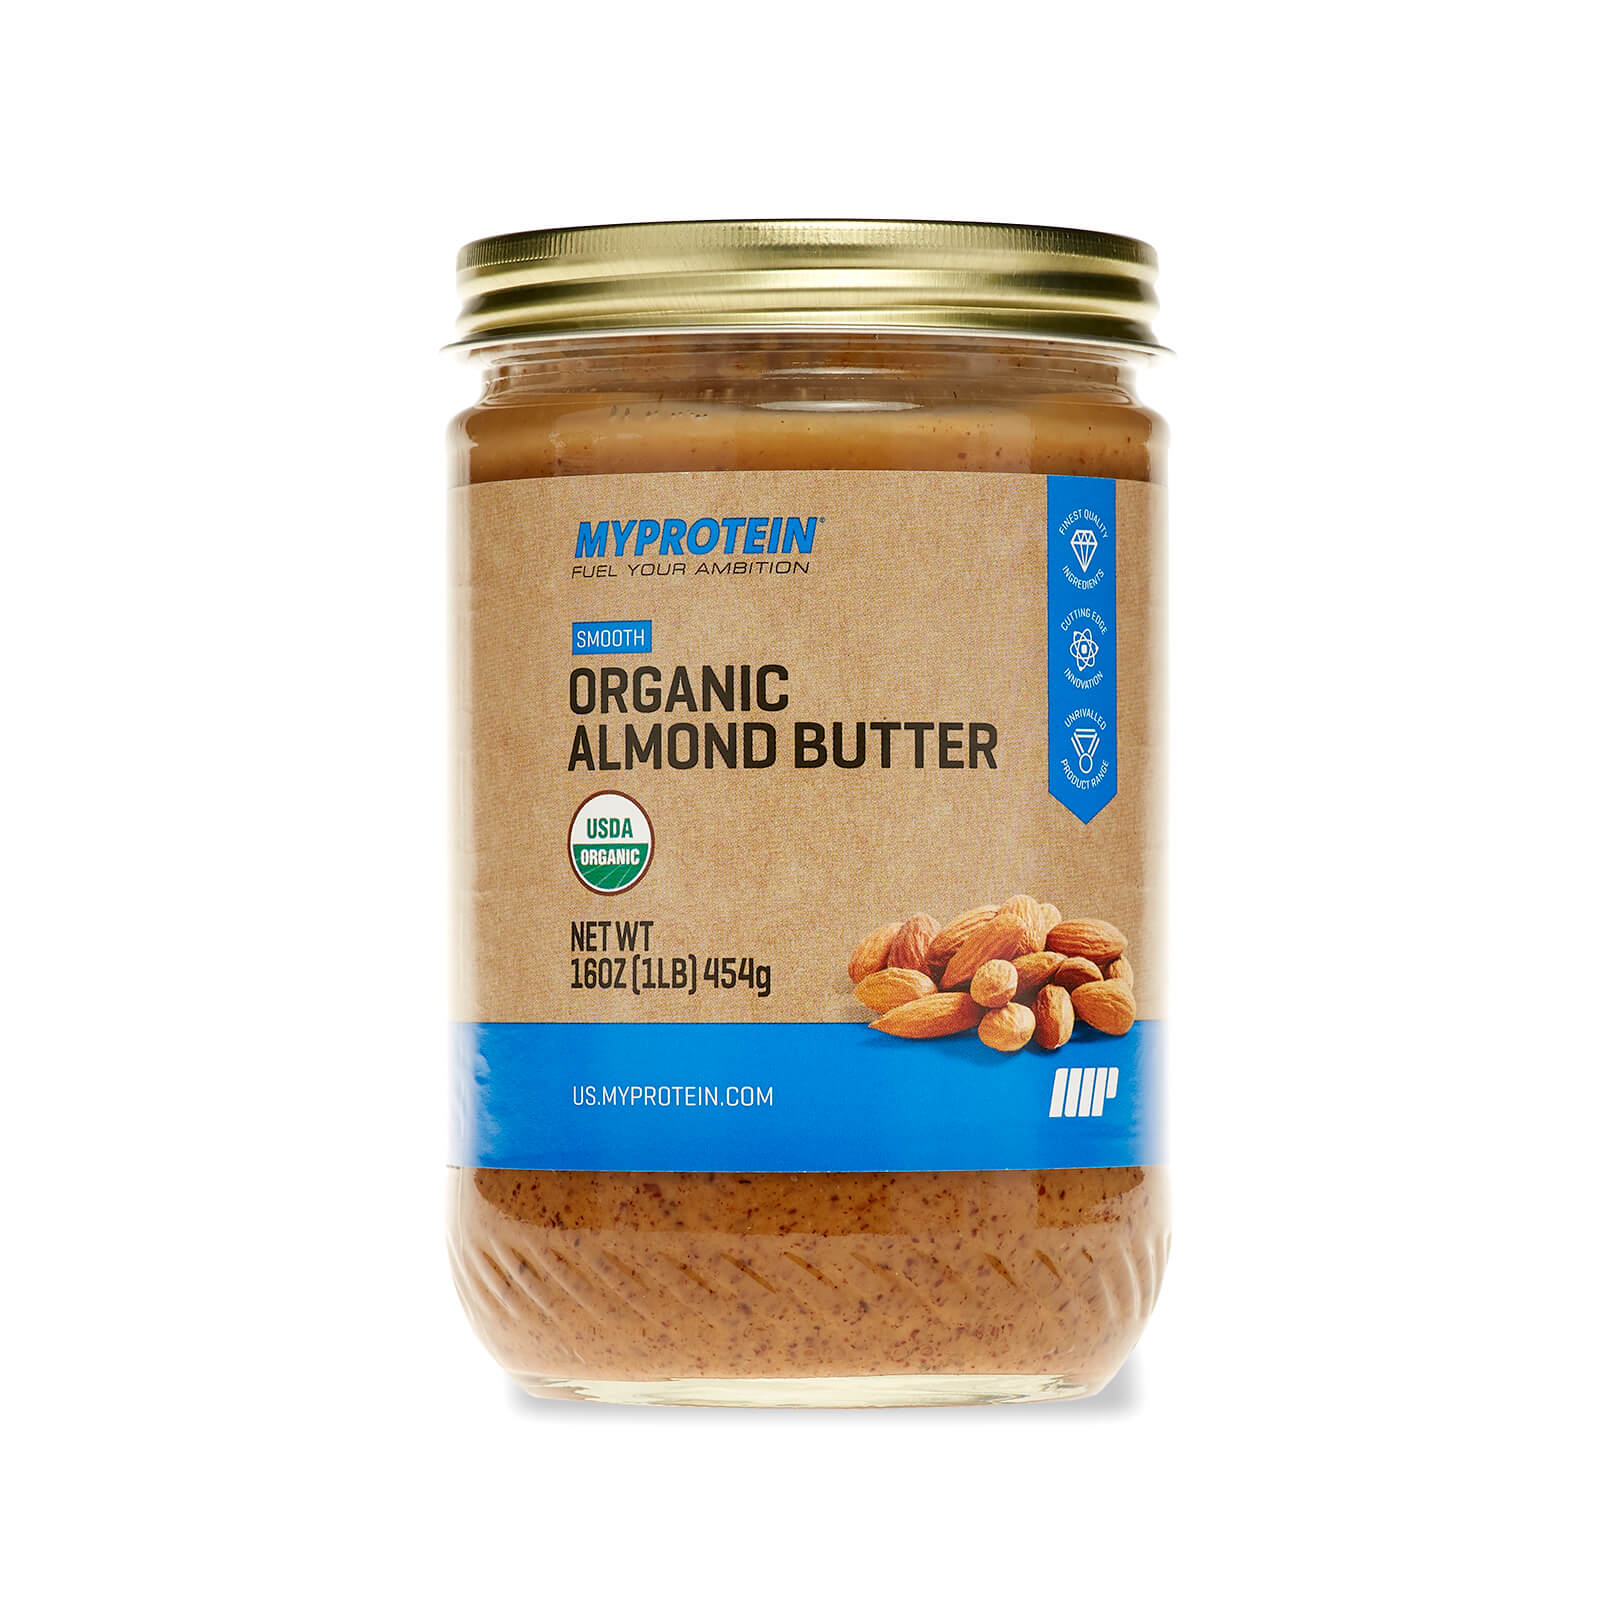 Organic Almond Butter - Smooth - 16 Oz (USA)